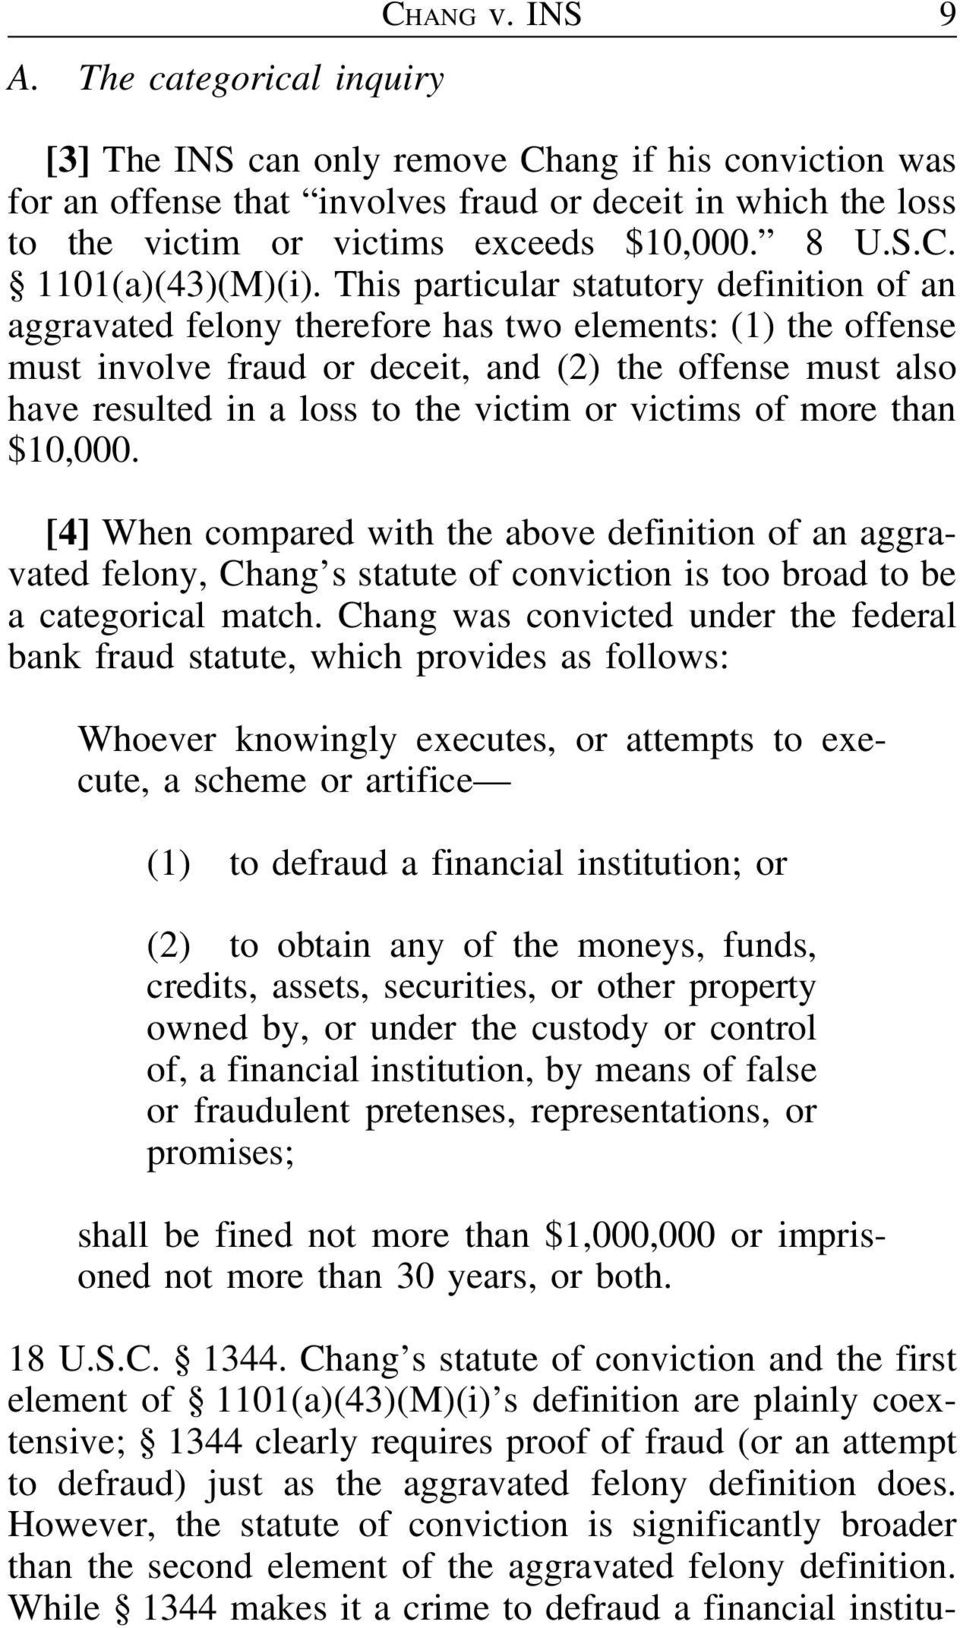 This particular statutory definition of an aggravated felony therefore has two elements: (1) the offense must involve fraud or deceit, and (2) the offense must also have resulted in a loss to the